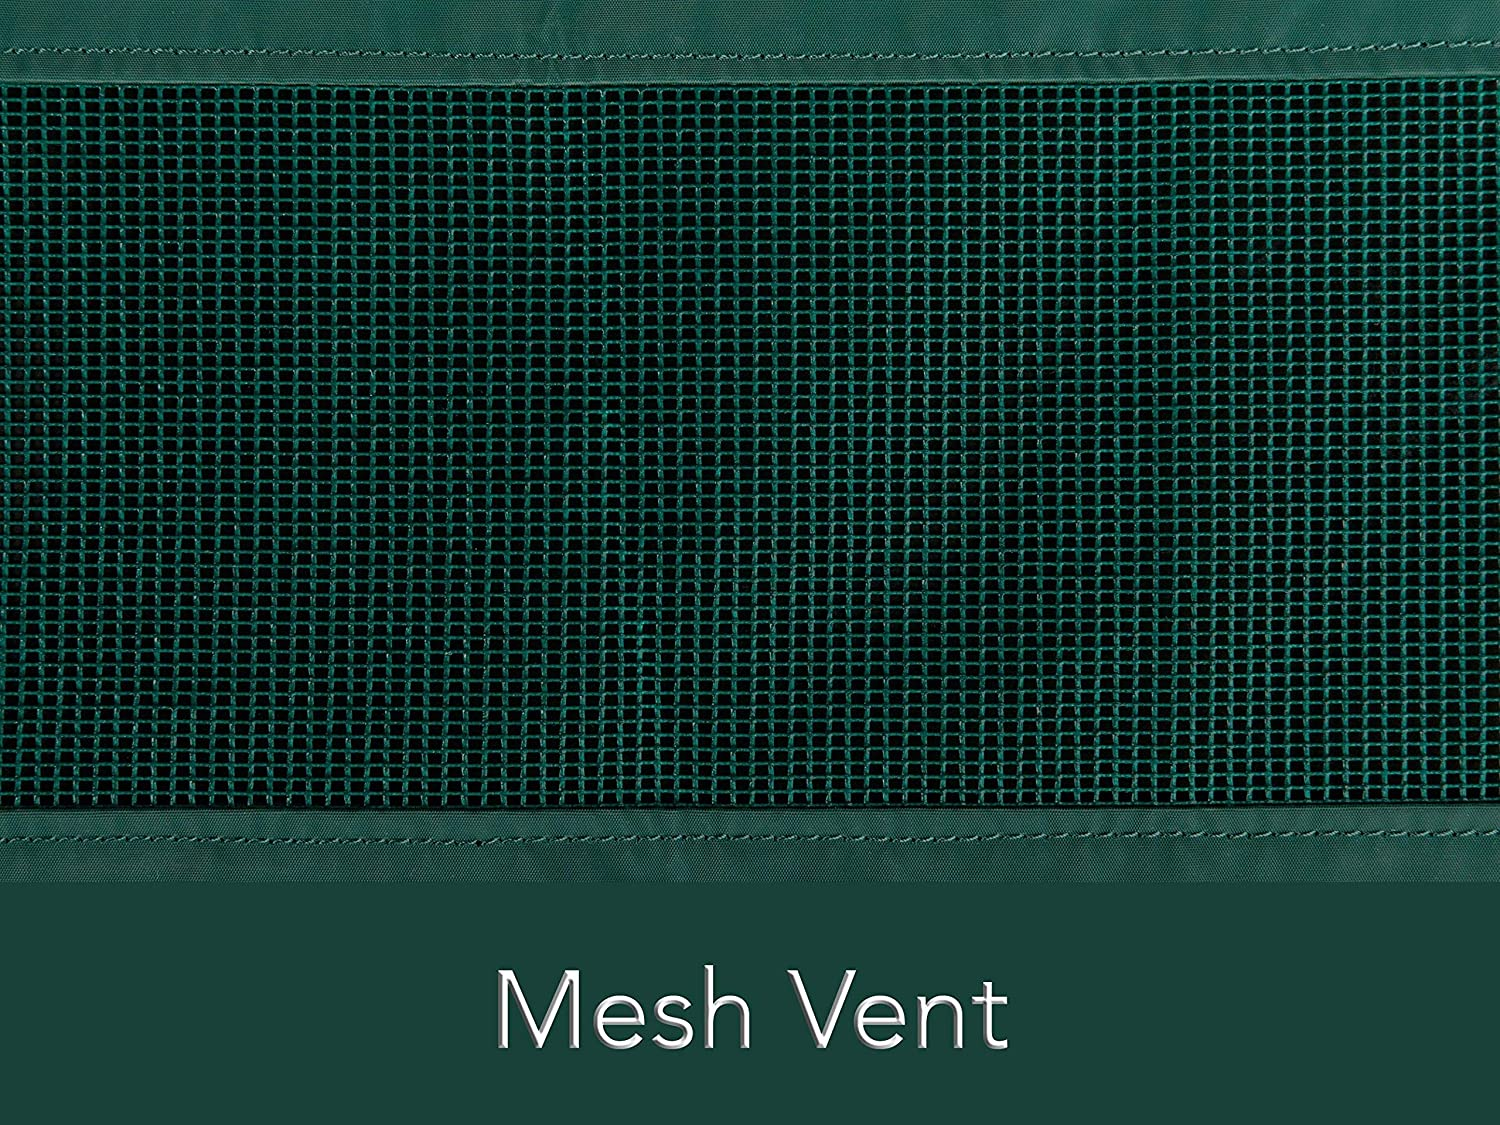 Built-in Mesh Vent Elastic Hem for Secure Fit Classic 12-Gauge Vinyl 62W x 32D x 34H Outdoor Patio Bench Cover Weather Resistant Covermates Green